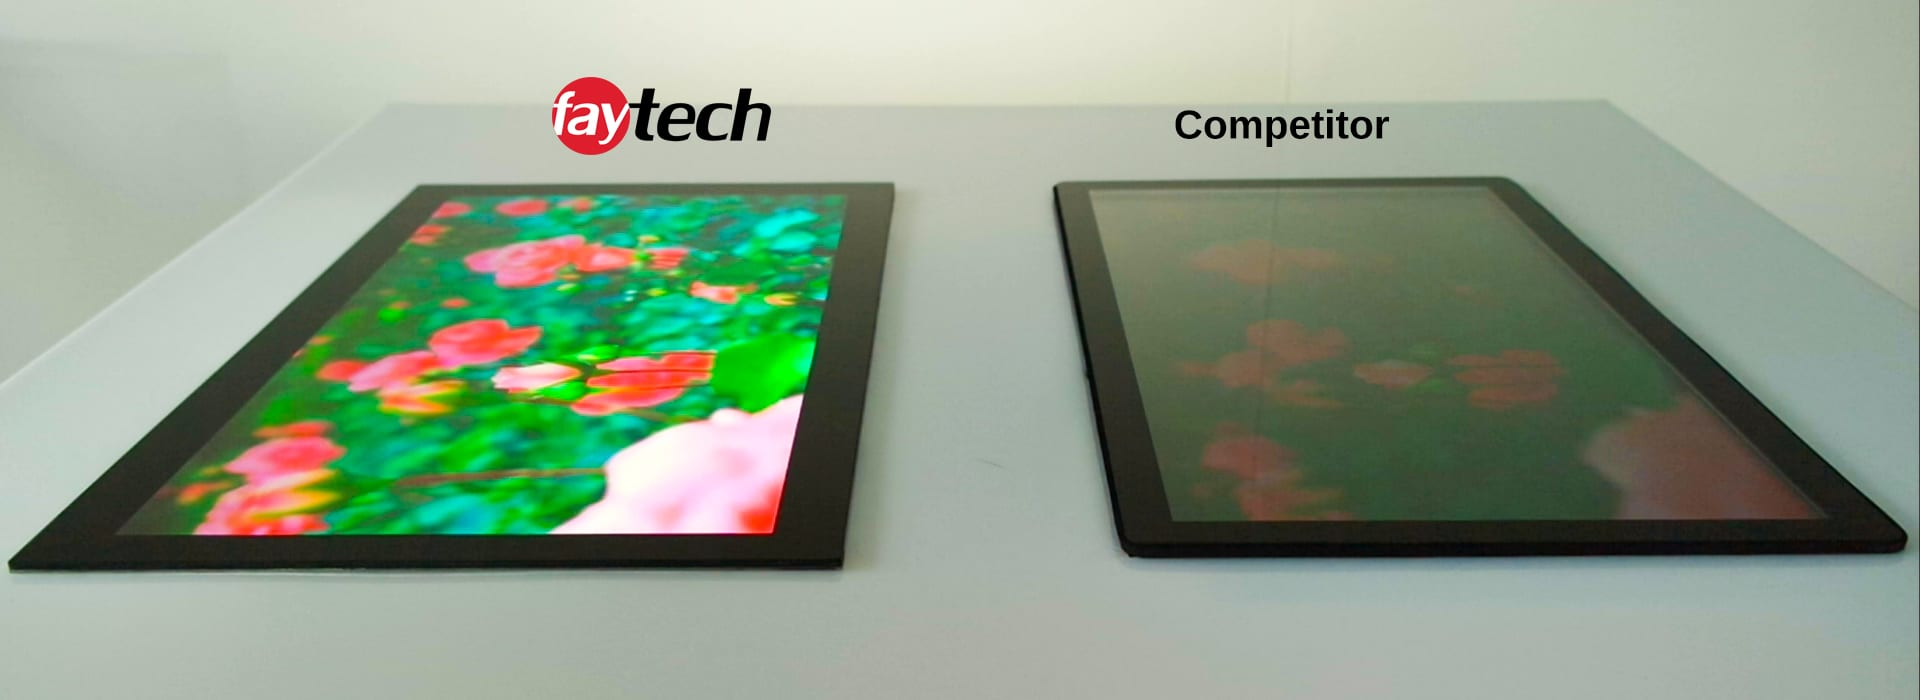 faytech North America Comparison of the Open Frame Touch Monitor